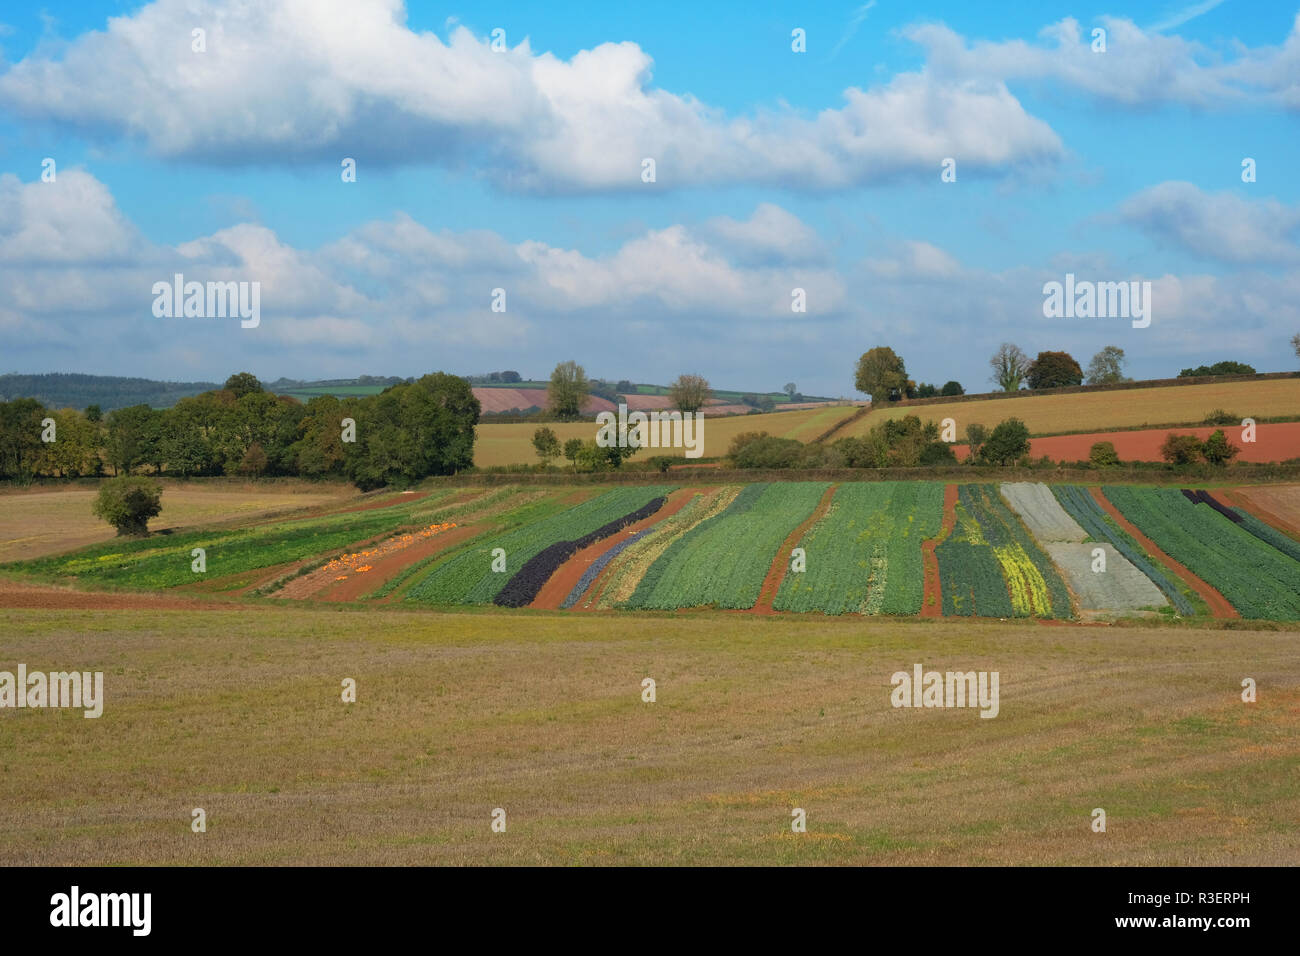 Variety of vegetables, including pumpkins, growing in a Devon field,UK - John Gollop - Stock Image